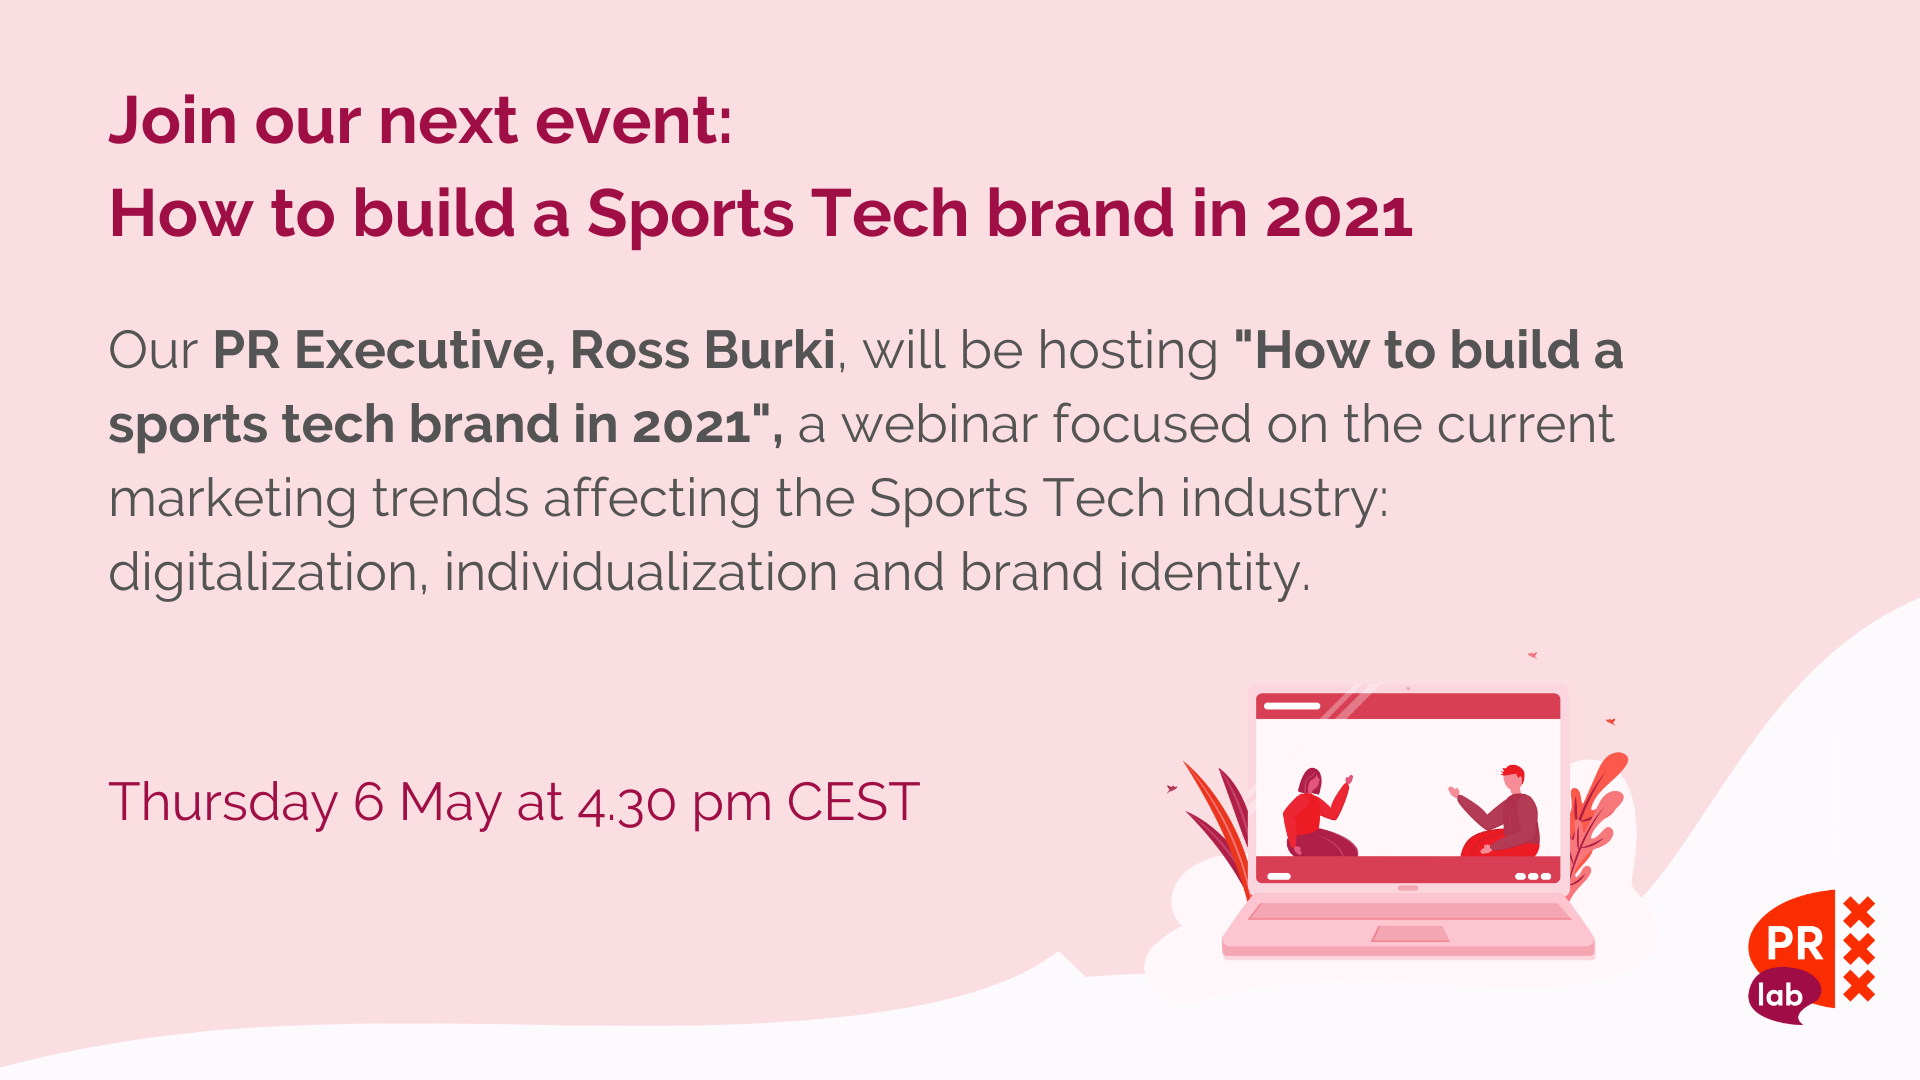 PRLab Lead Generation Event- How to build a Sports Tech brand in 2021